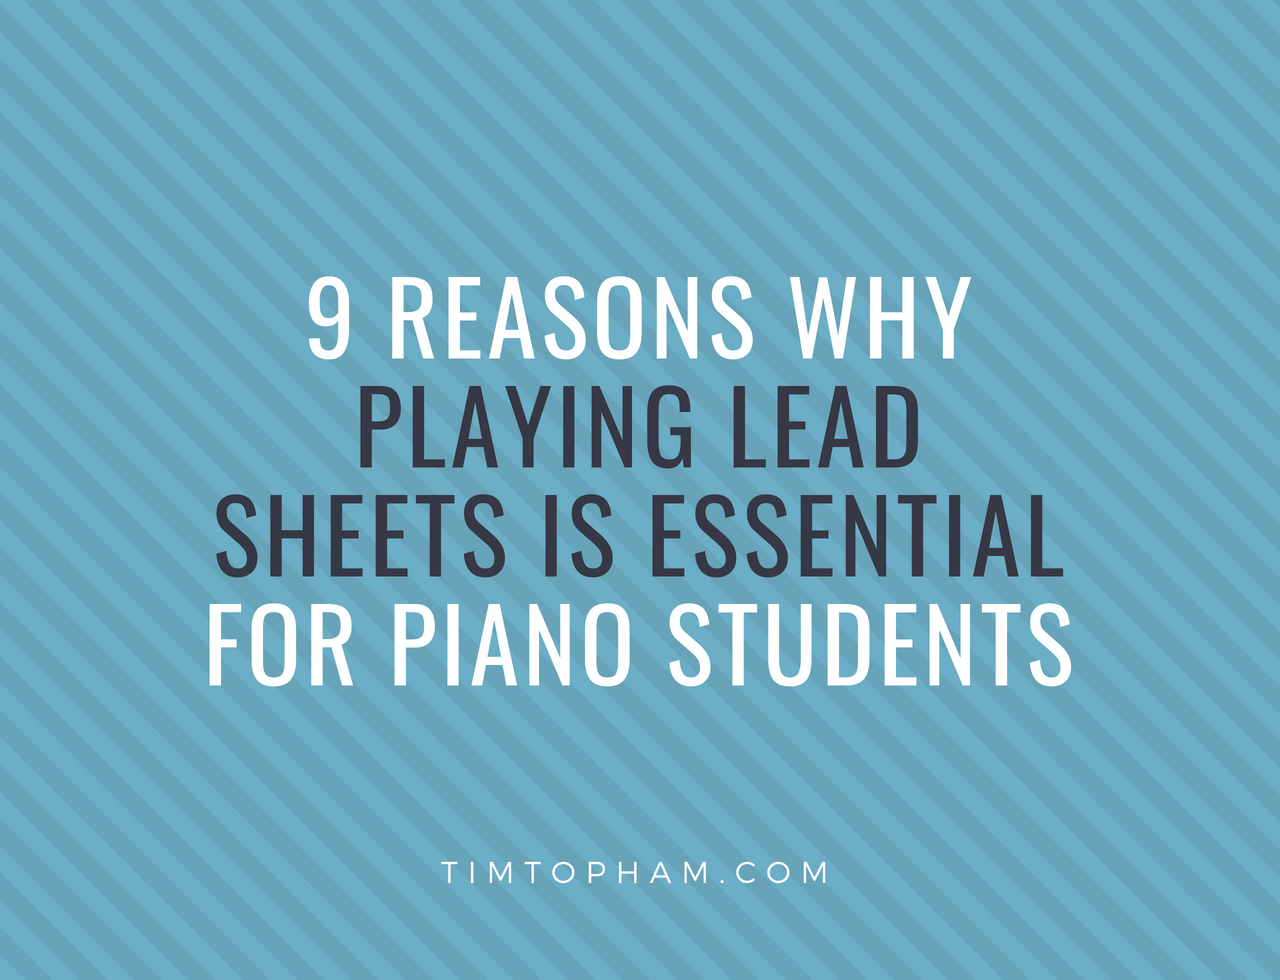 9 Reasons why Playing Lead Sheets is Essential for Piano